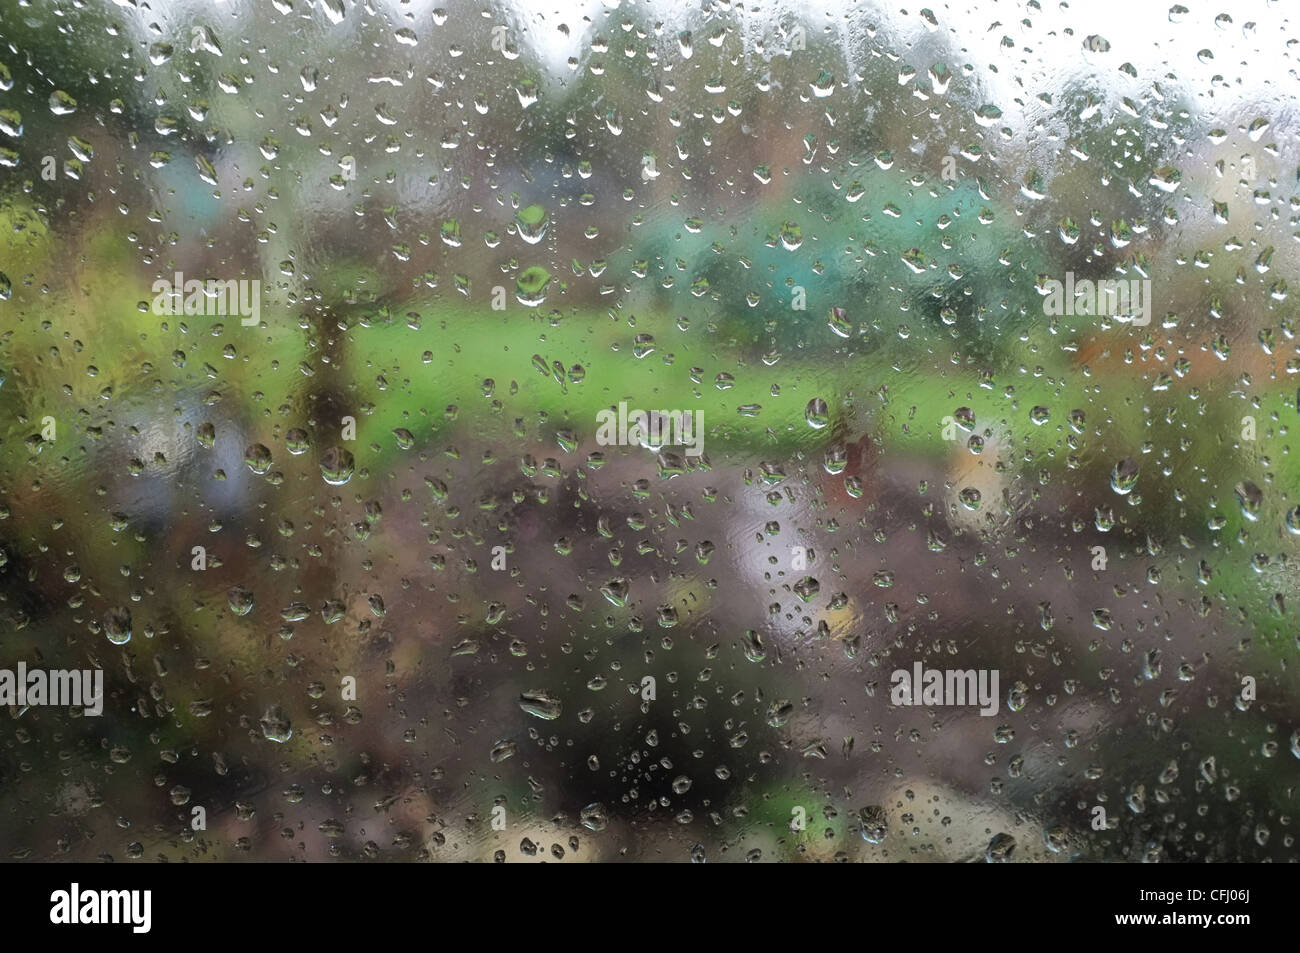 Raindrops on a window looking out into a Cornish vegetable garden - Stock Image